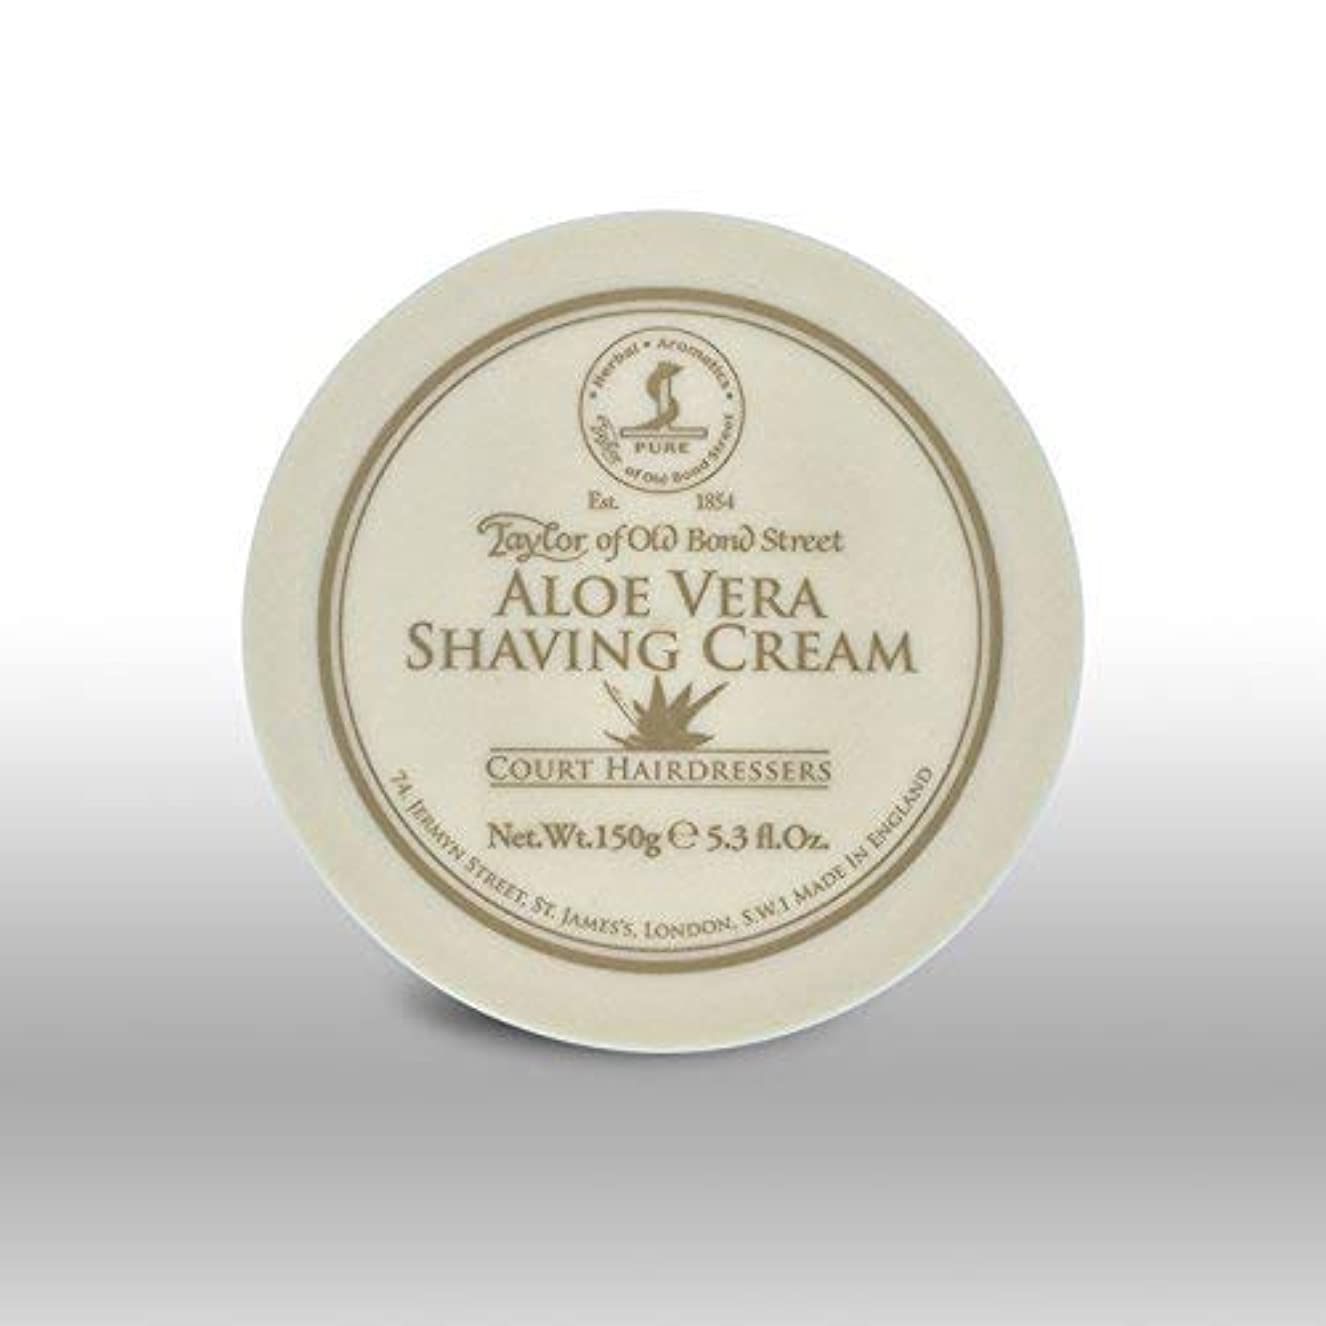 収まるエイリアスソロTaylor Of Old Bond Street Shaving Cream Pot 150g -Aloe Vera [並行輸入品]